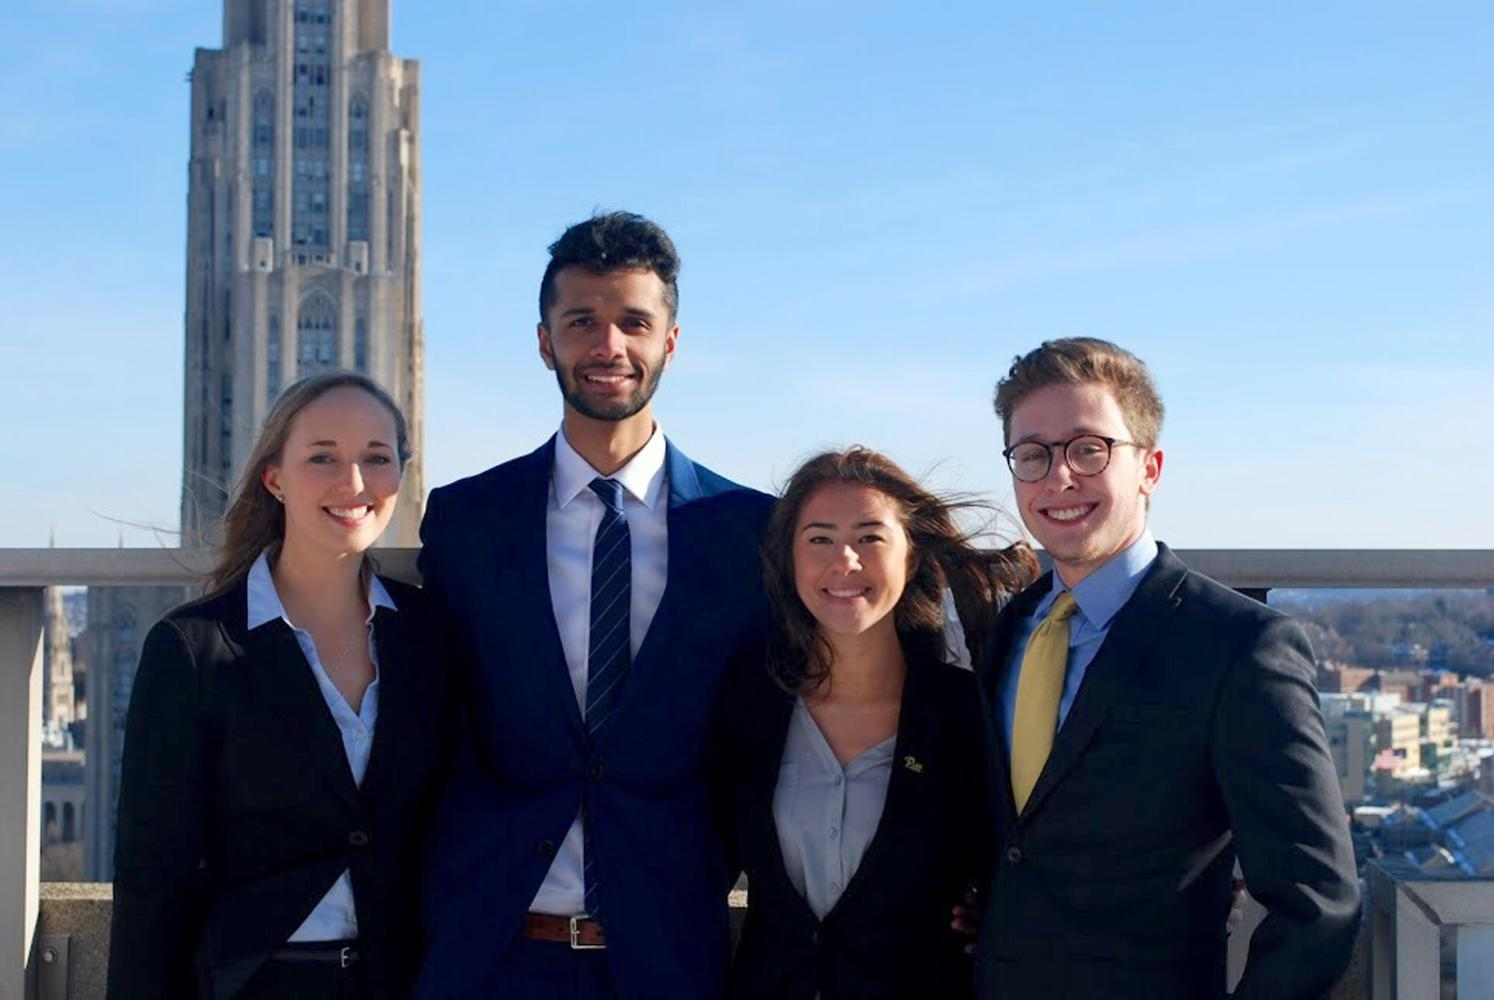 (Pictured left to right) SGB President Maggie Kennedy, Rajaab Nadeem, Jessa Chong and Cory Stillman. (Photo courtesy of Horizon)